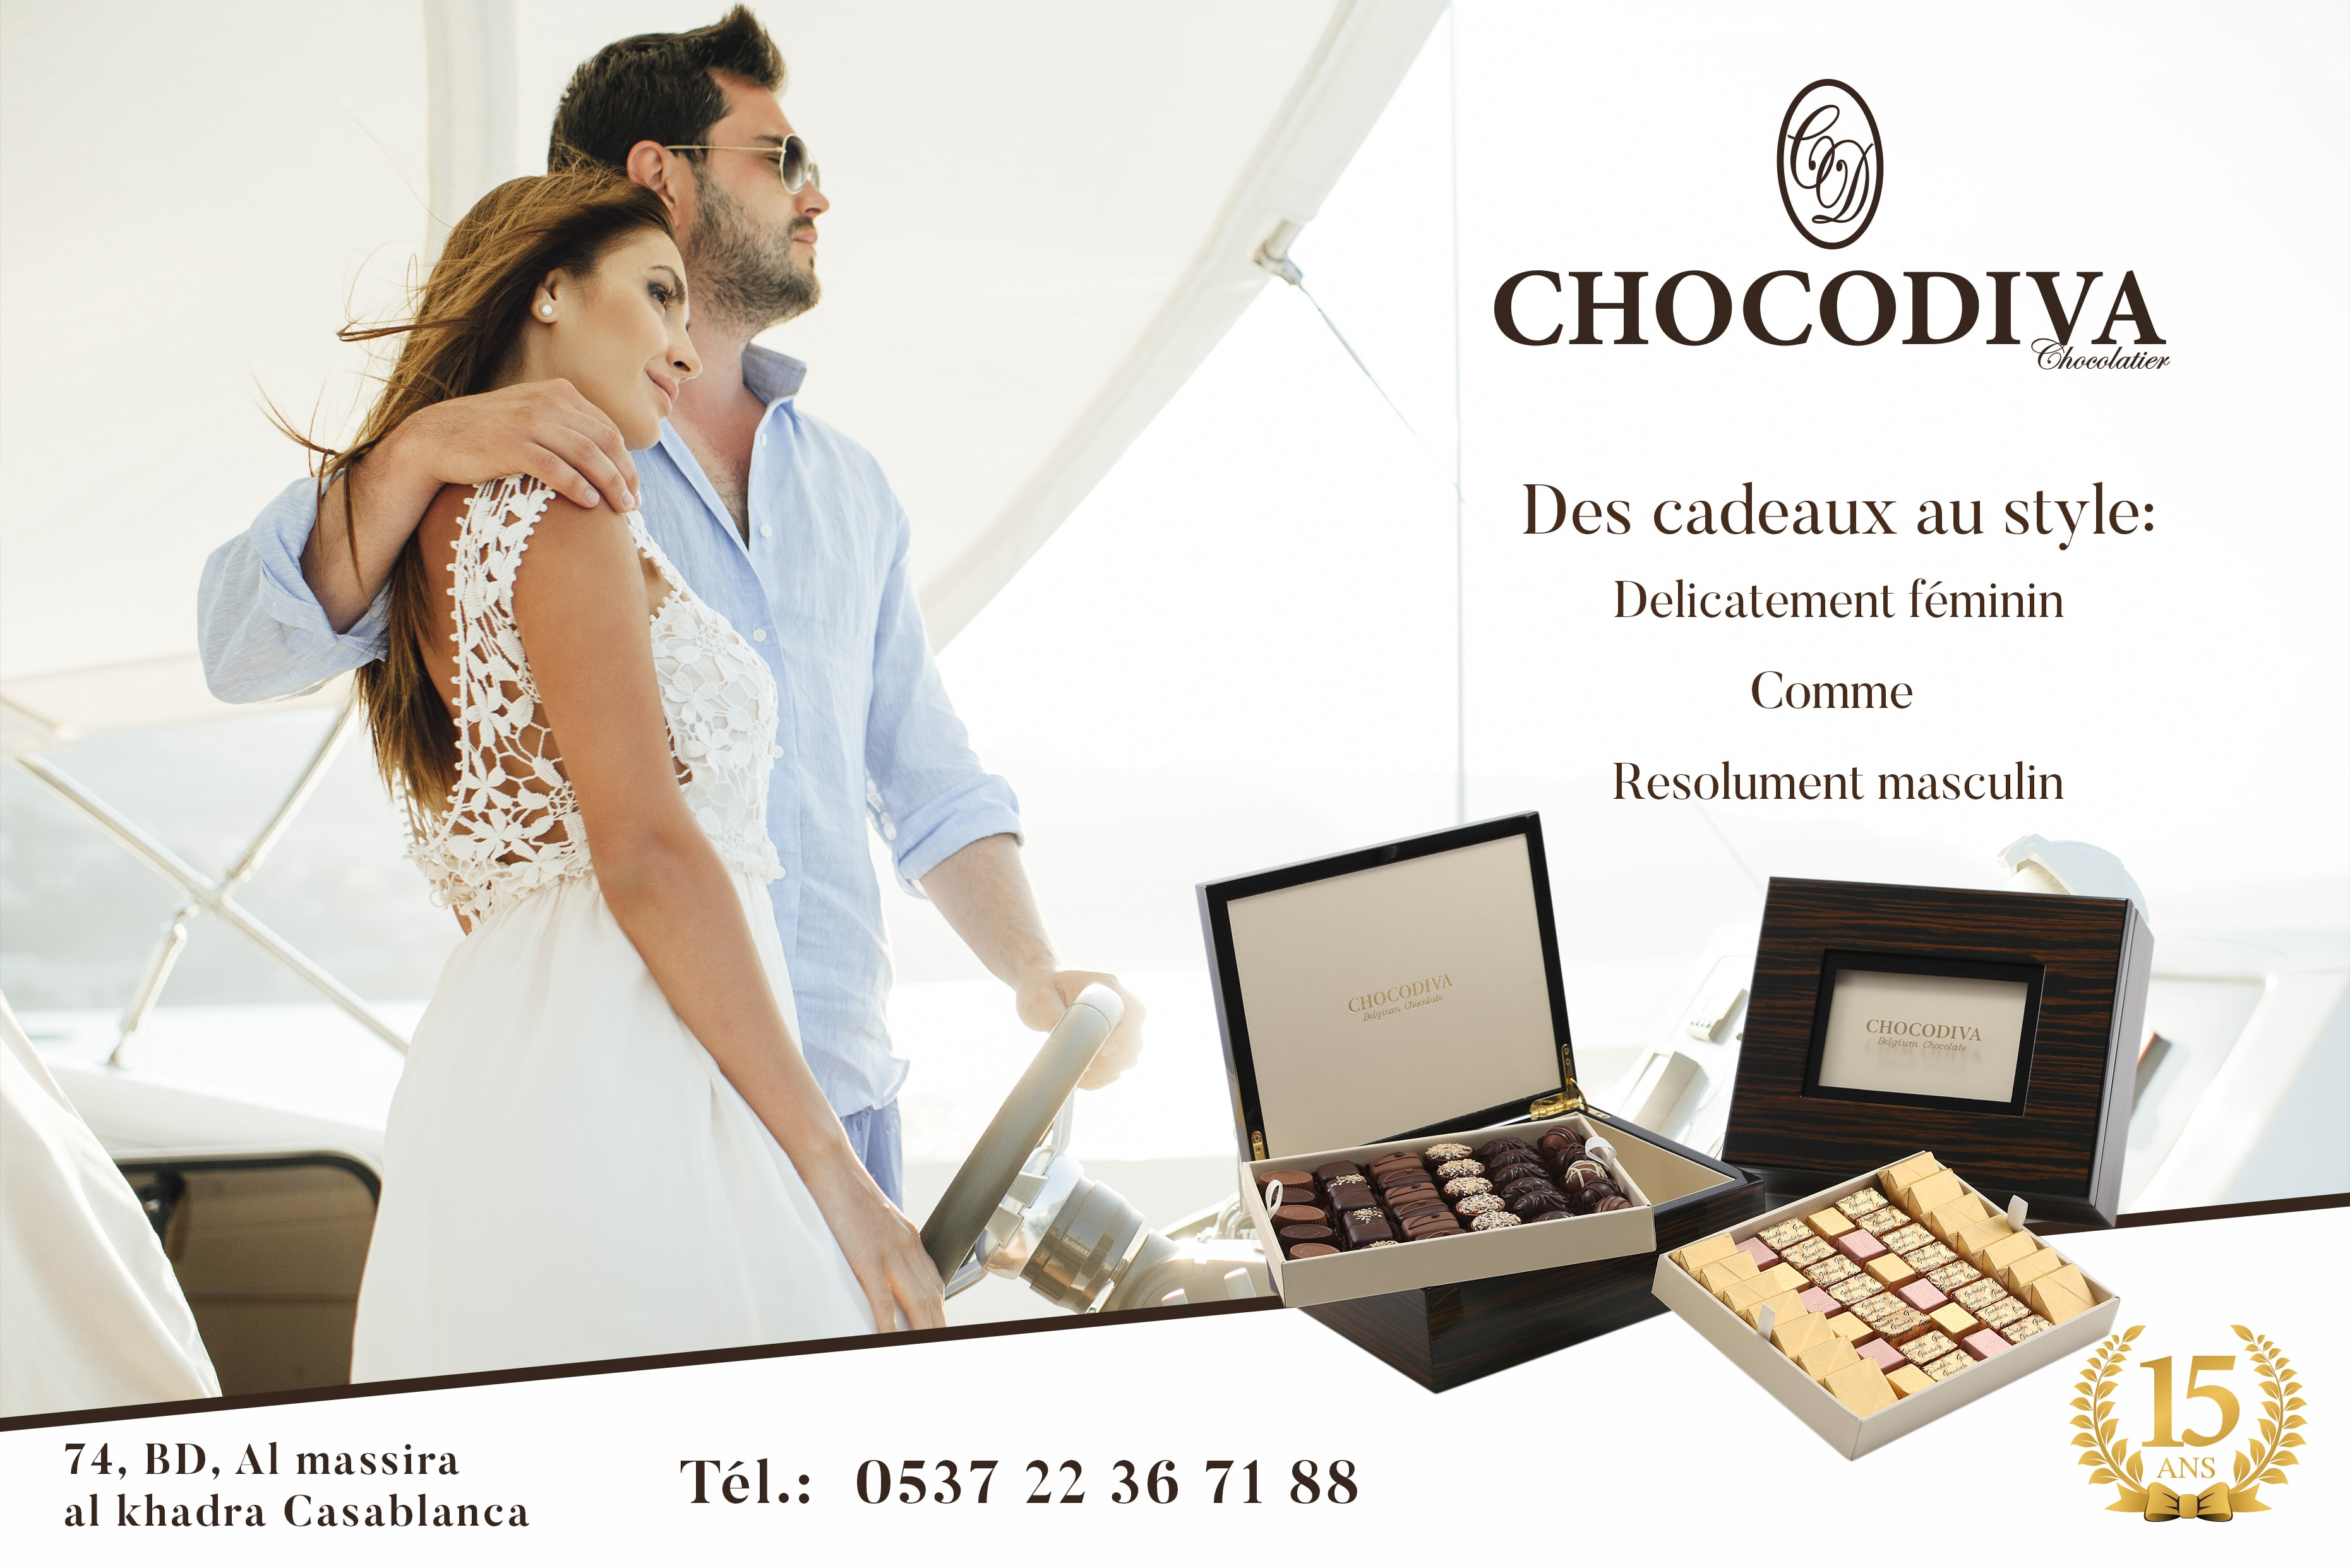 chocodiva casablanca